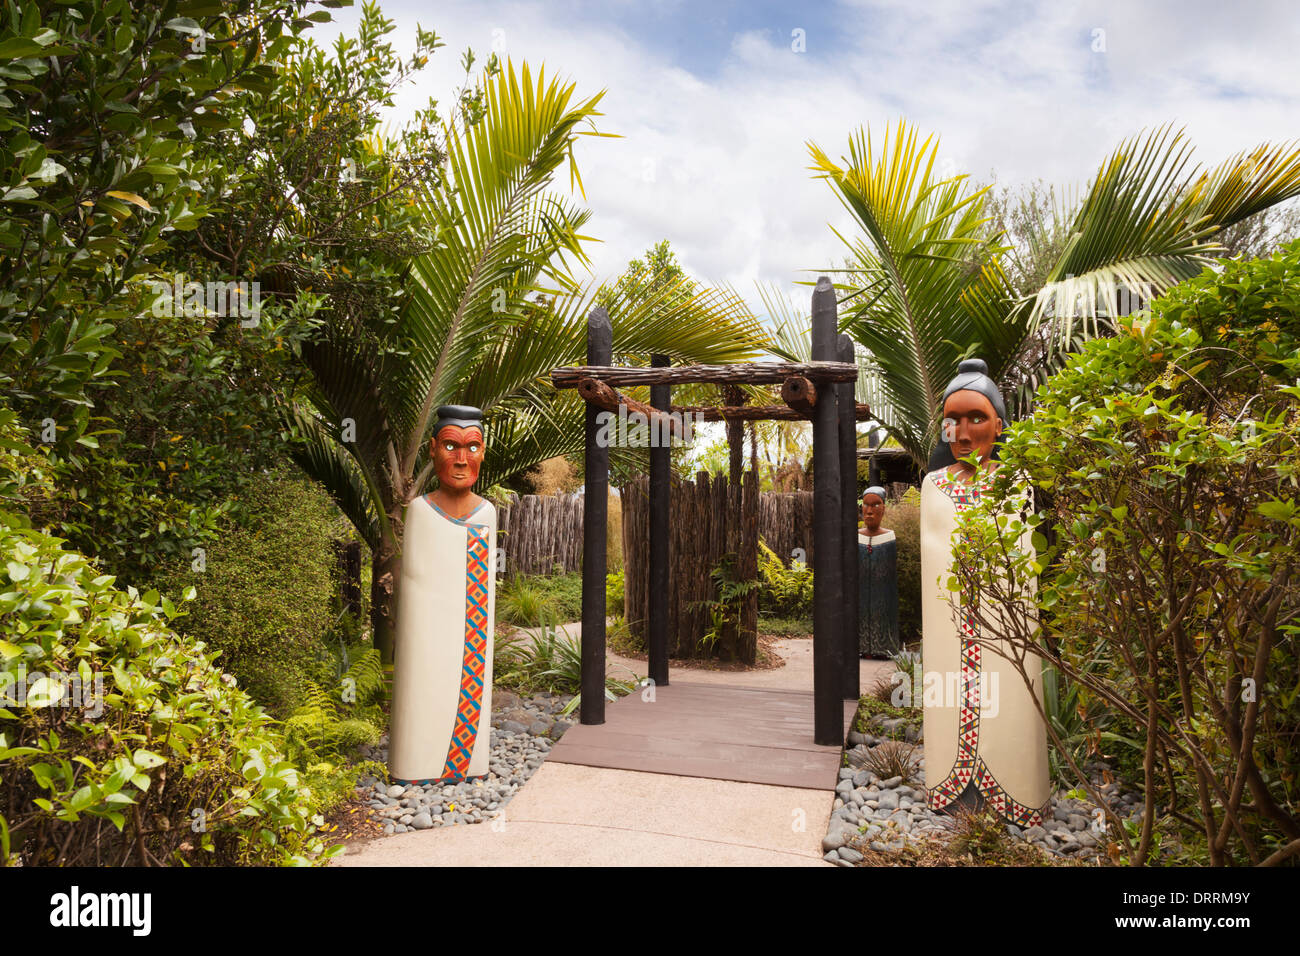 Auckland Botanic Gardens, the Mythological Maze of Maui Stock Photo ...